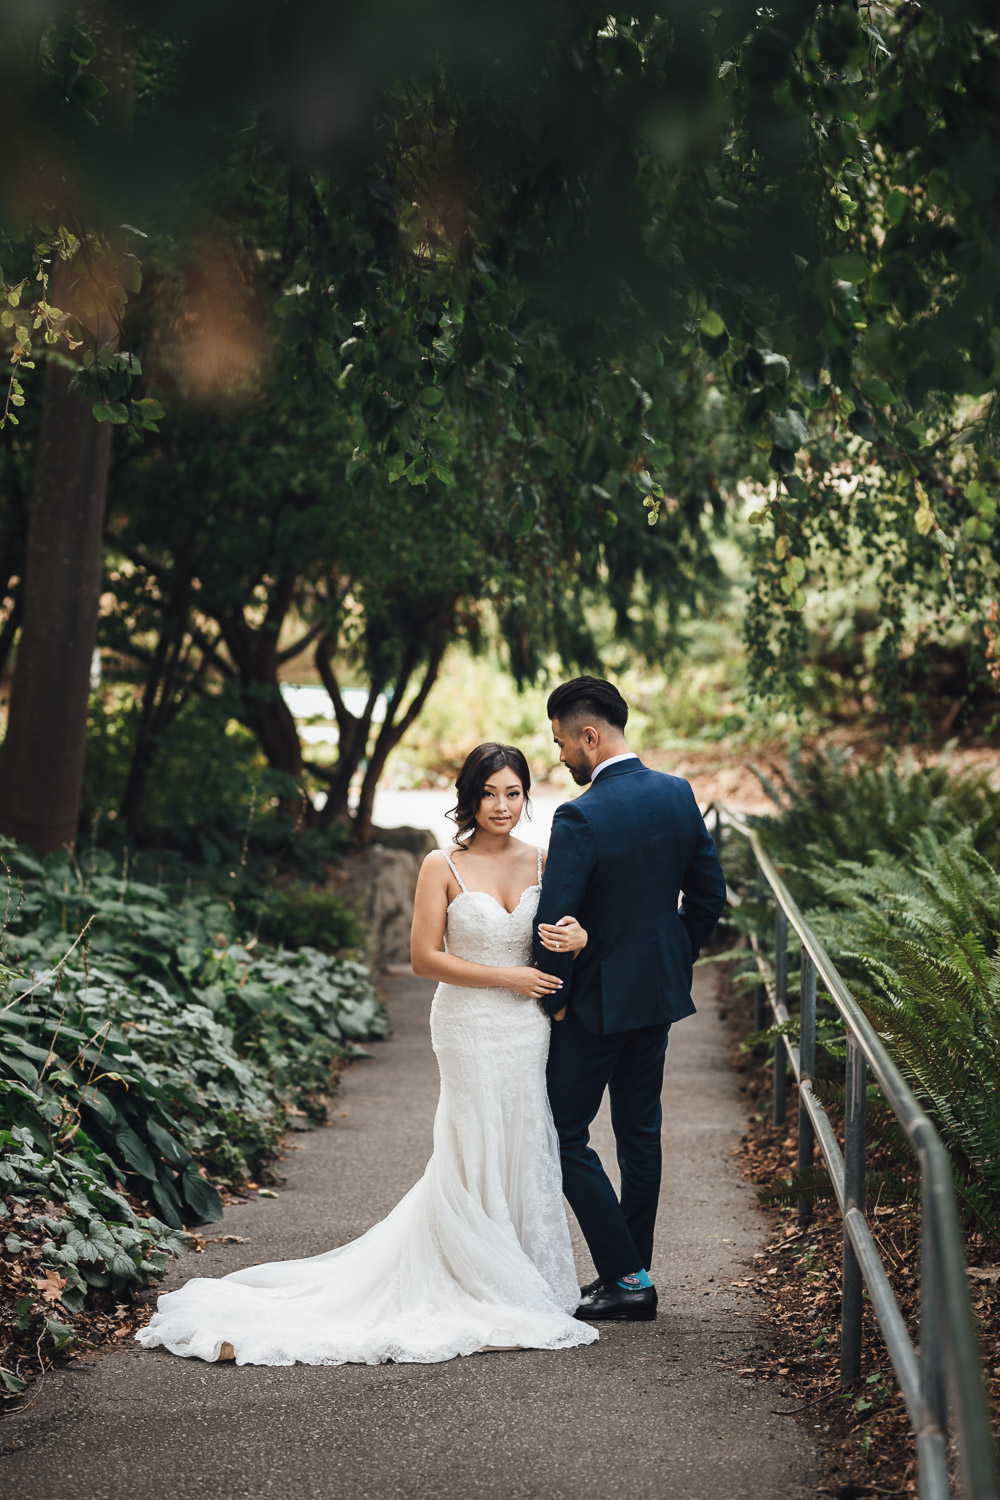 queen elizabeth park wedding photography portrait bc